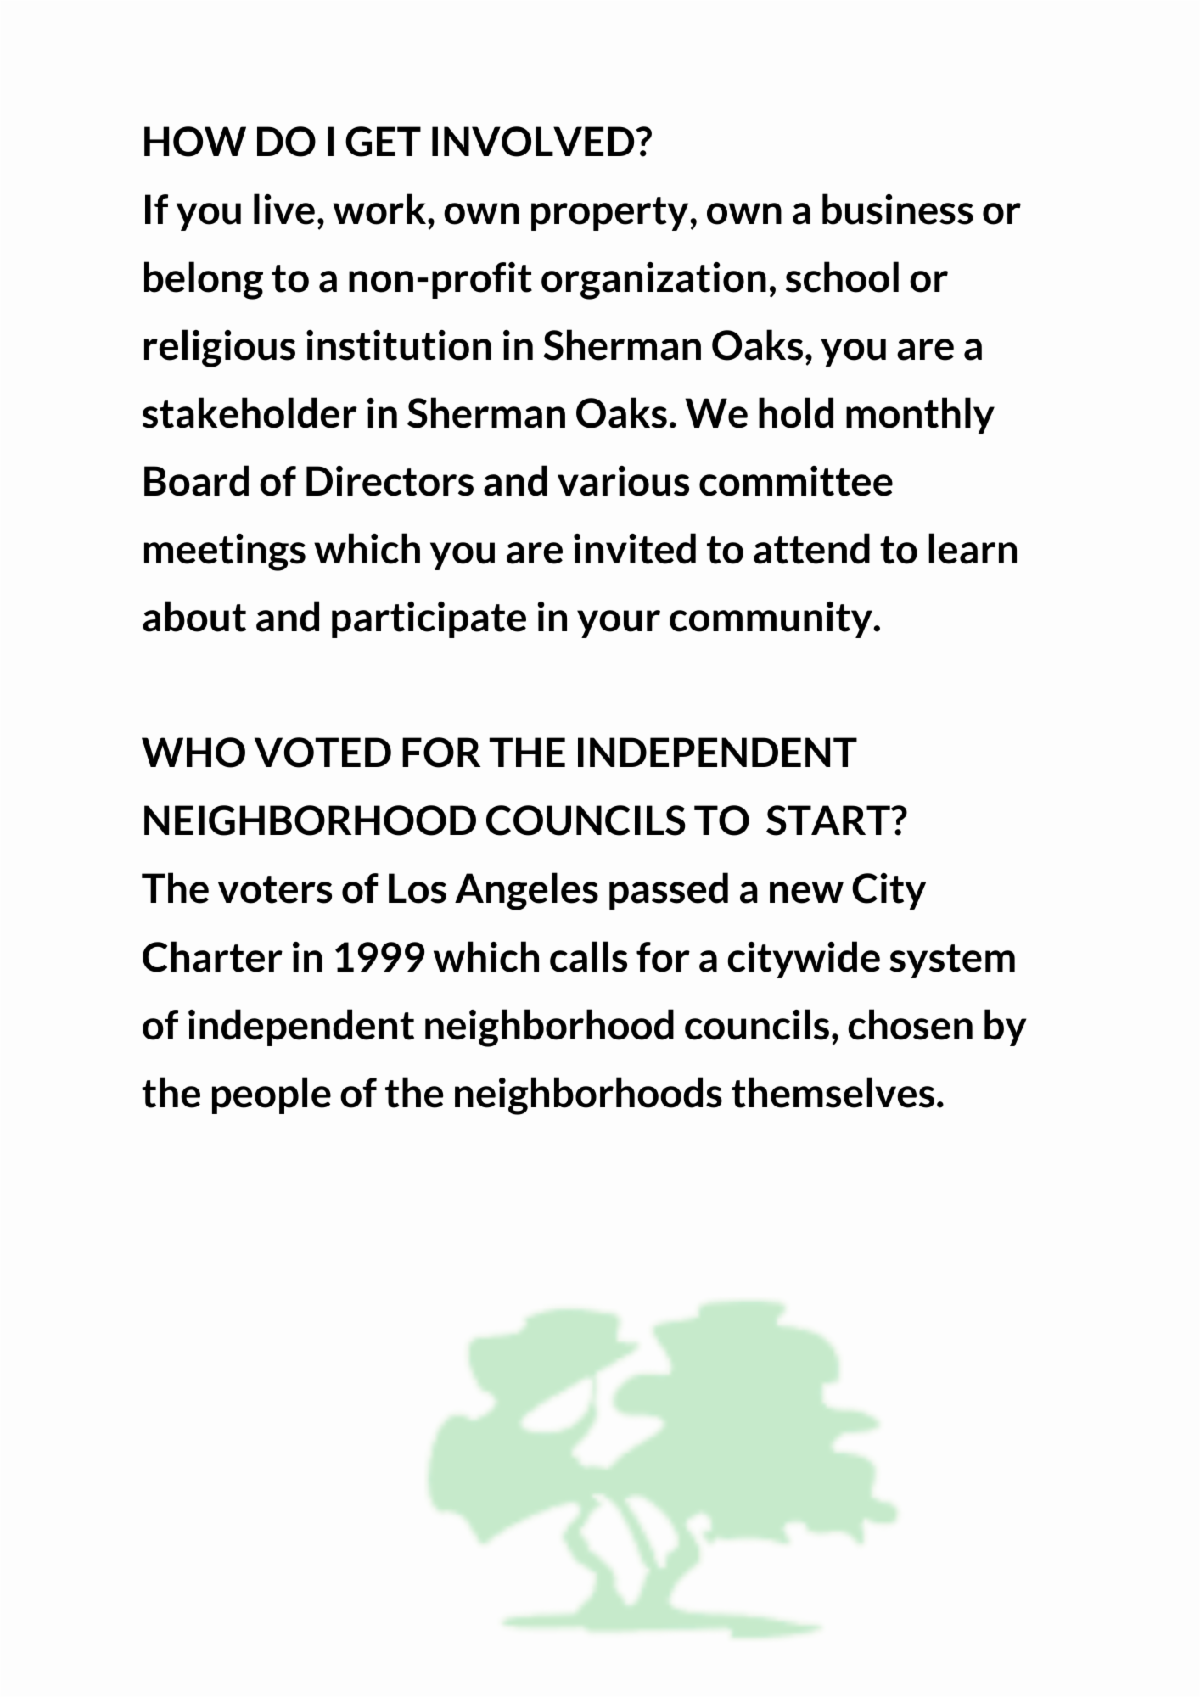 HOW DO I GET INVOLVED If you live work own property own a business or belong to a non profit organization school or religious institution in Sherman Oaks you are a stakeholder in Sherman Oaks. We hold monthly Board of Directors and various committees